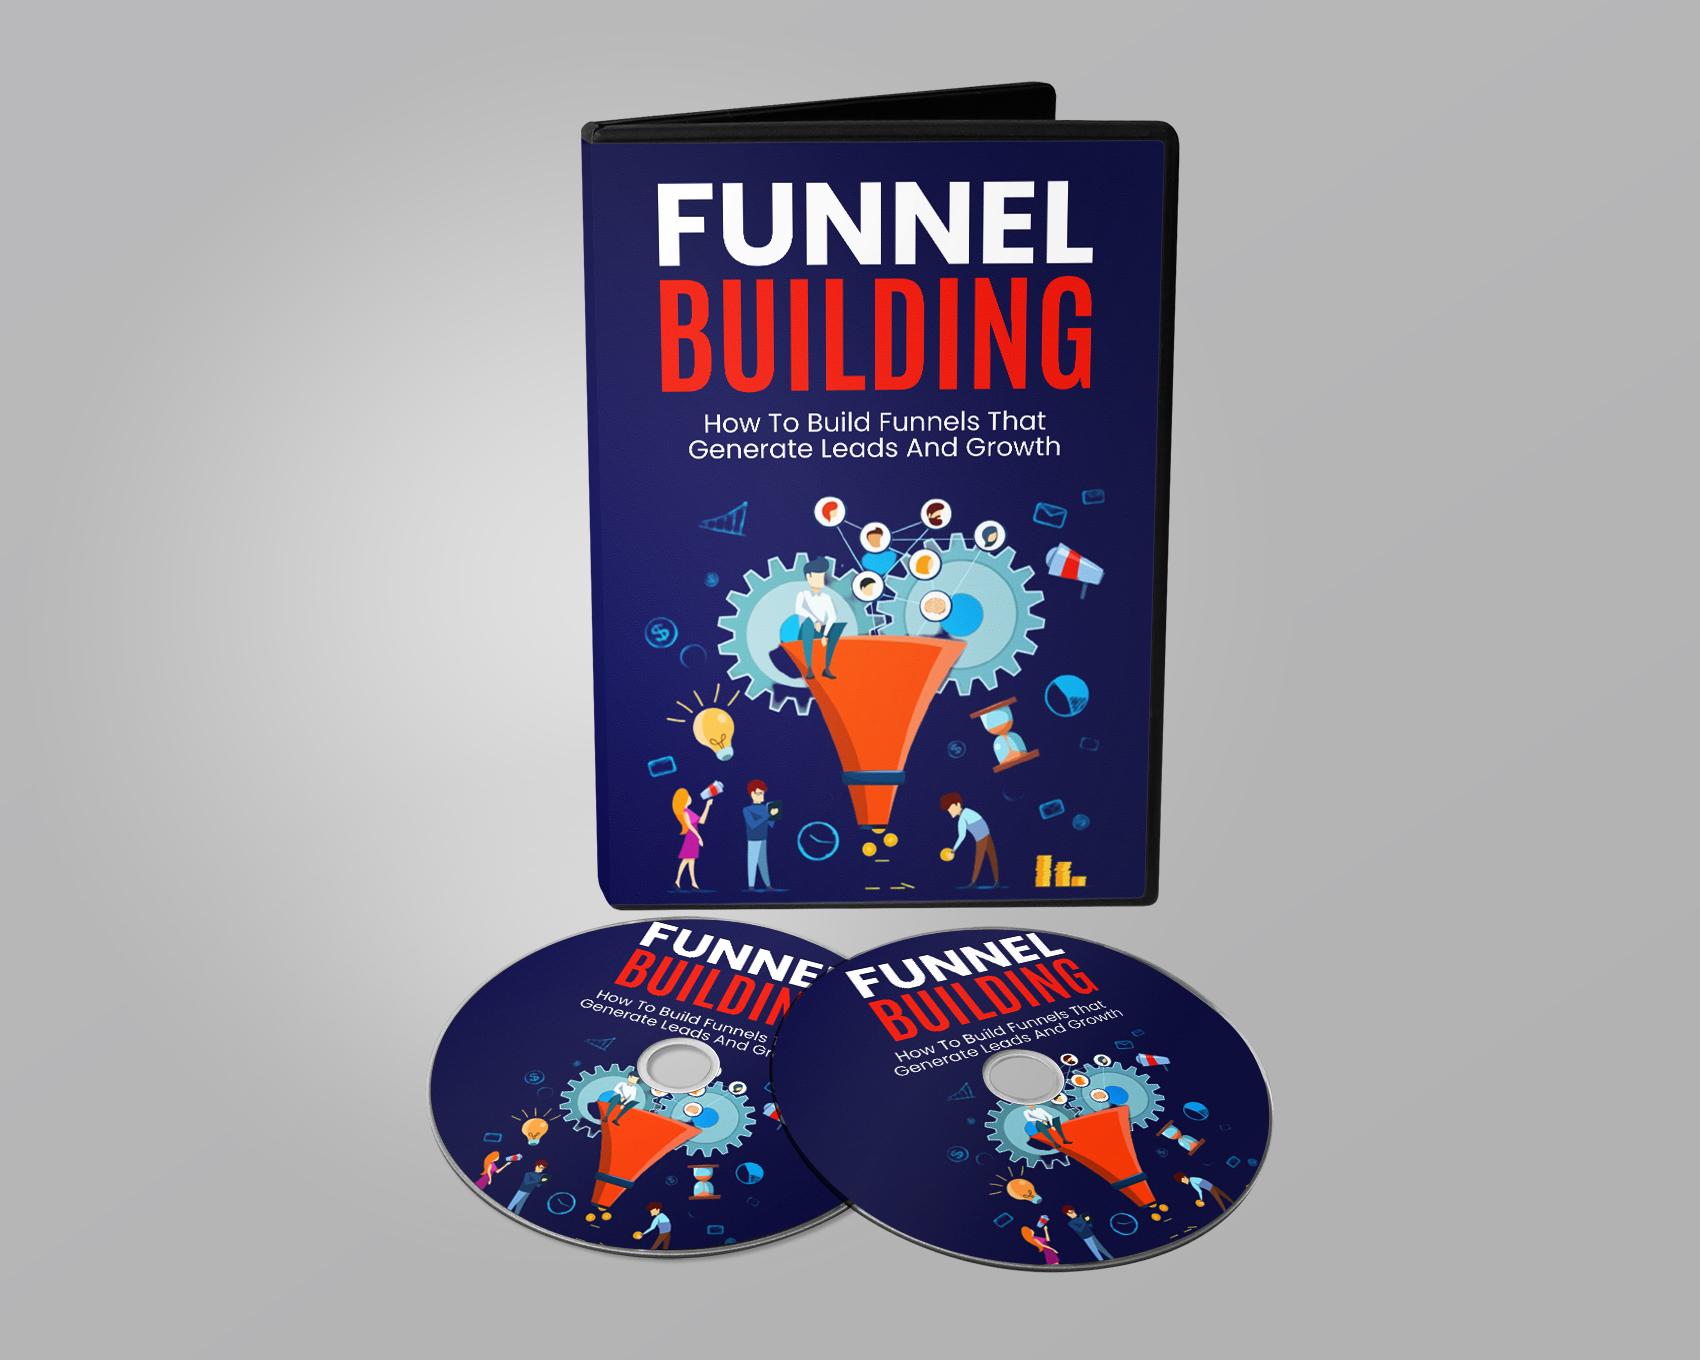 Funnnel Building